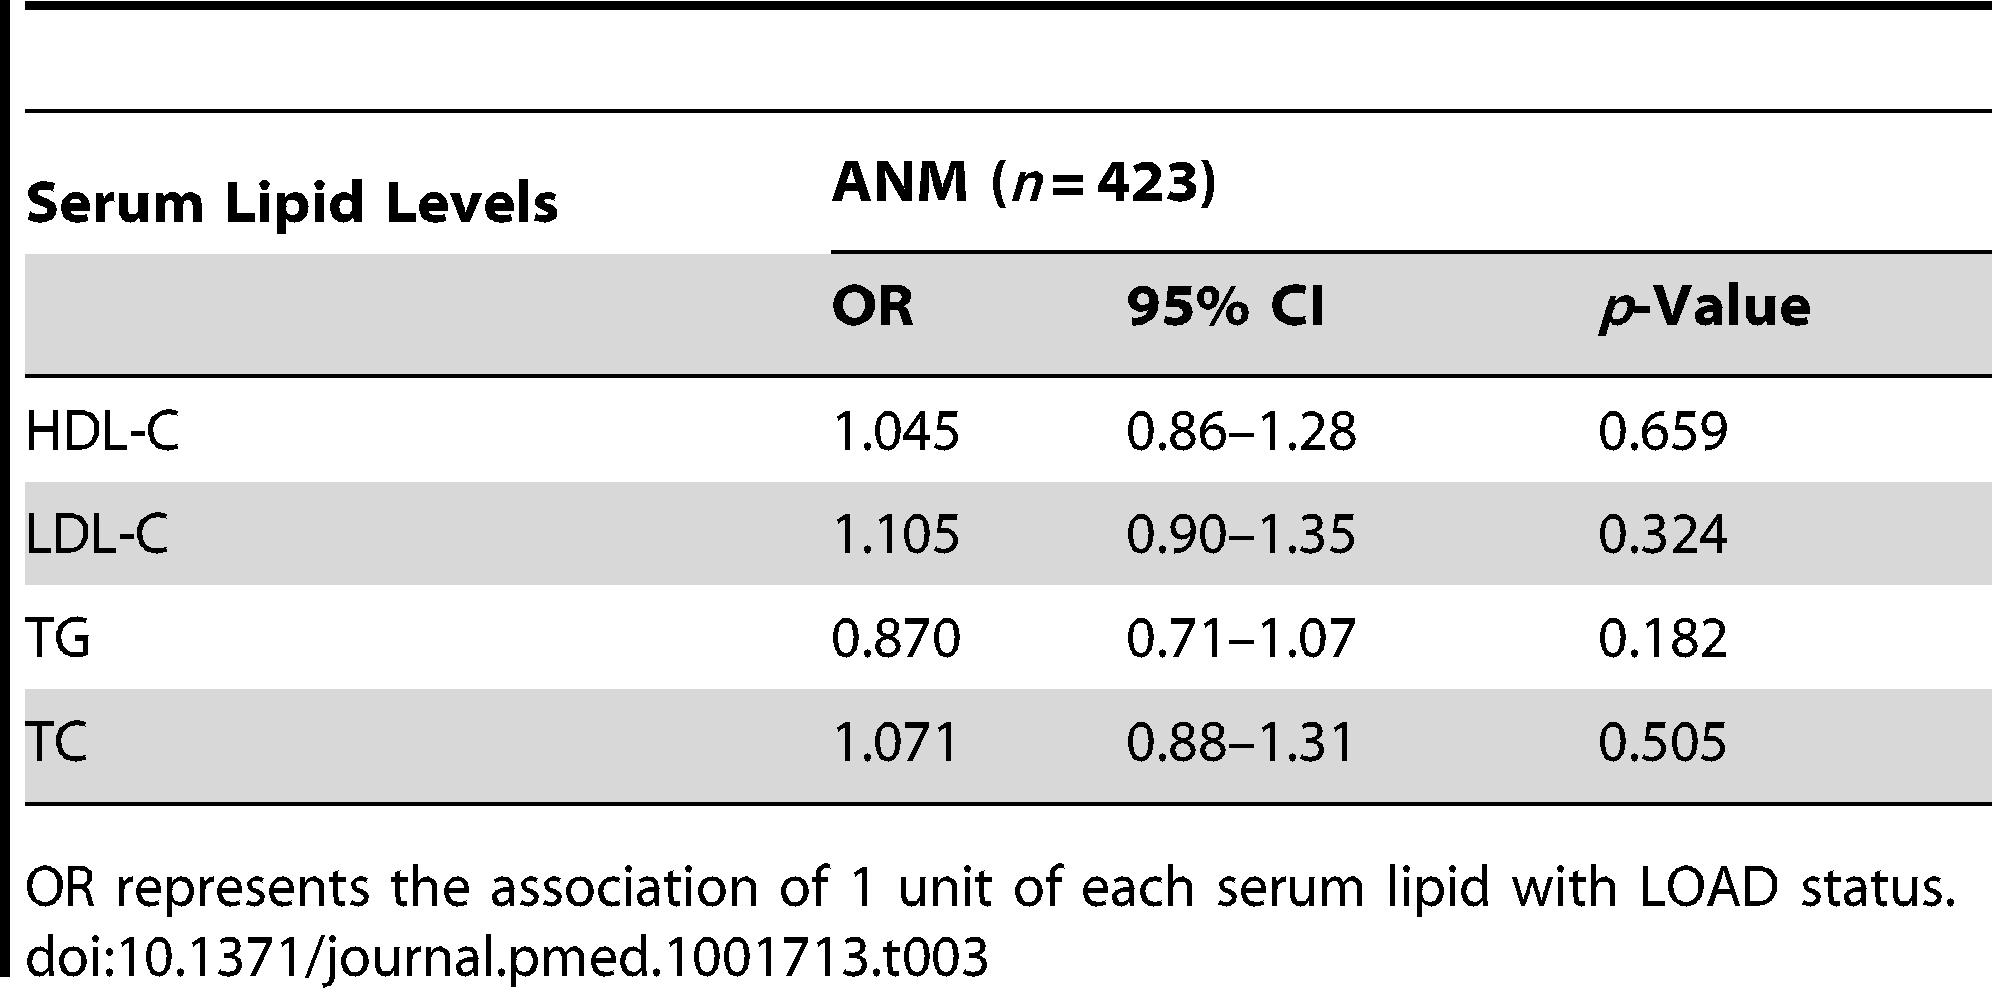 Association of serum lipid levels with LOAD in participants of the ANM cohort.